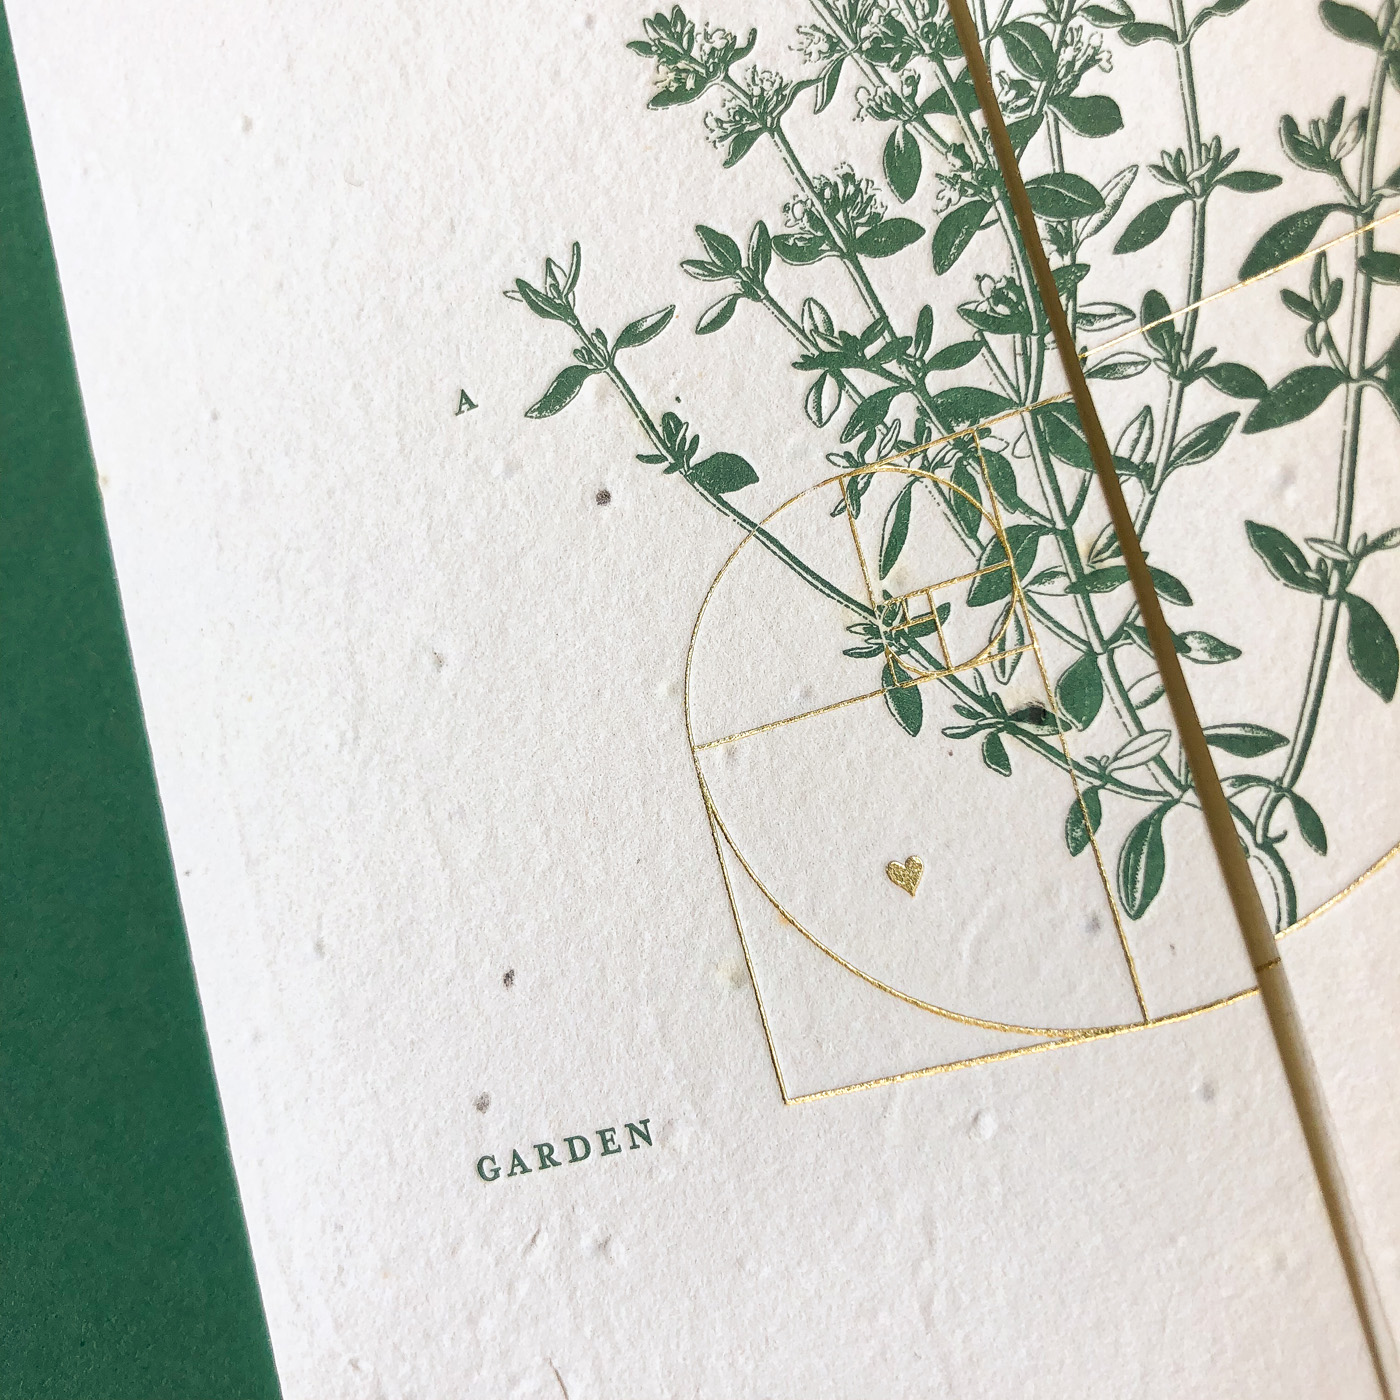 Letterpress and gold foil invitations designed for Cassy and Ben on thyme seed paper